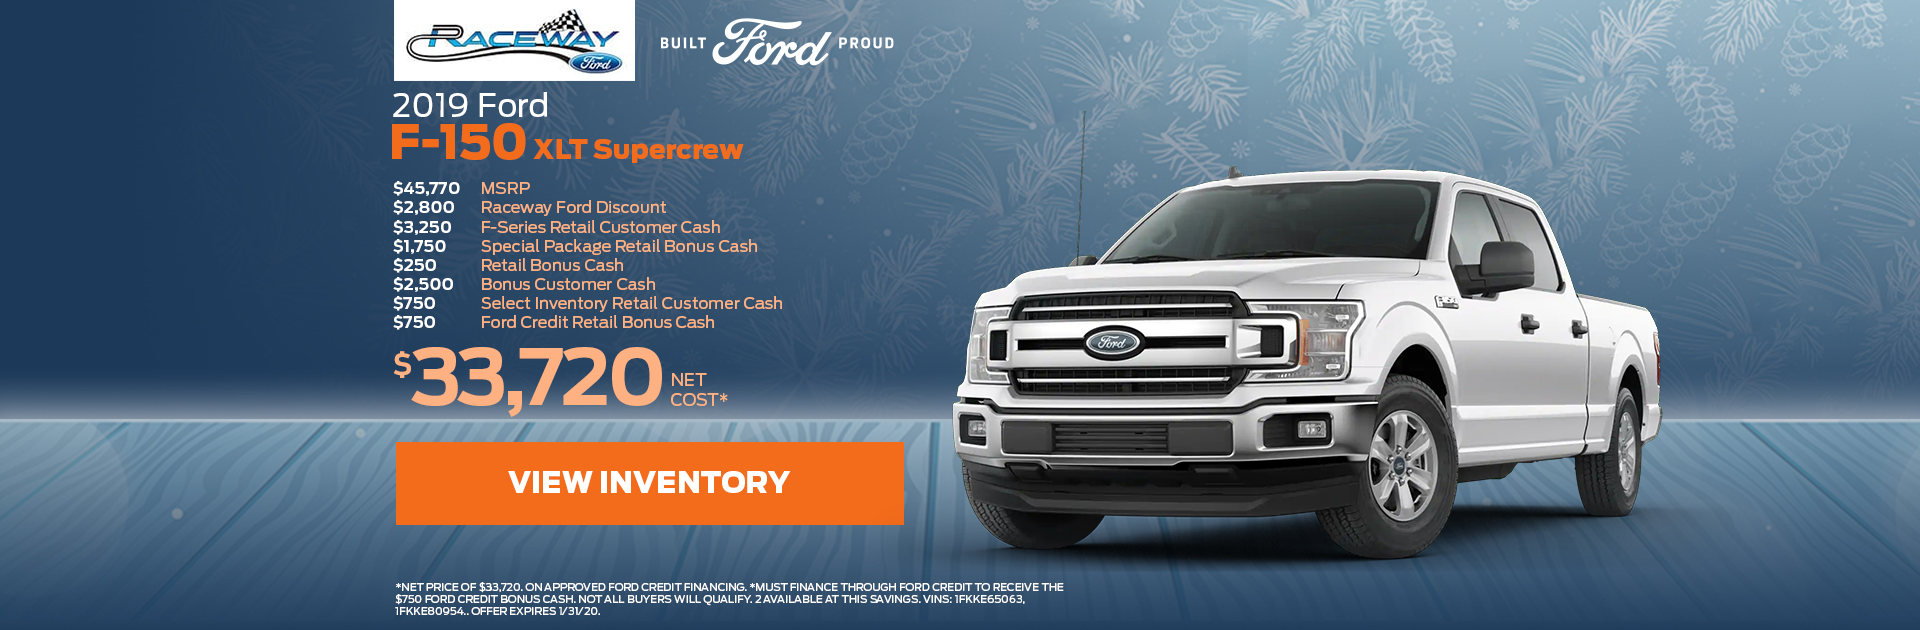 My Ford Credit >> Ford Dealer For New Used Cars Trucks Suvs Near Me